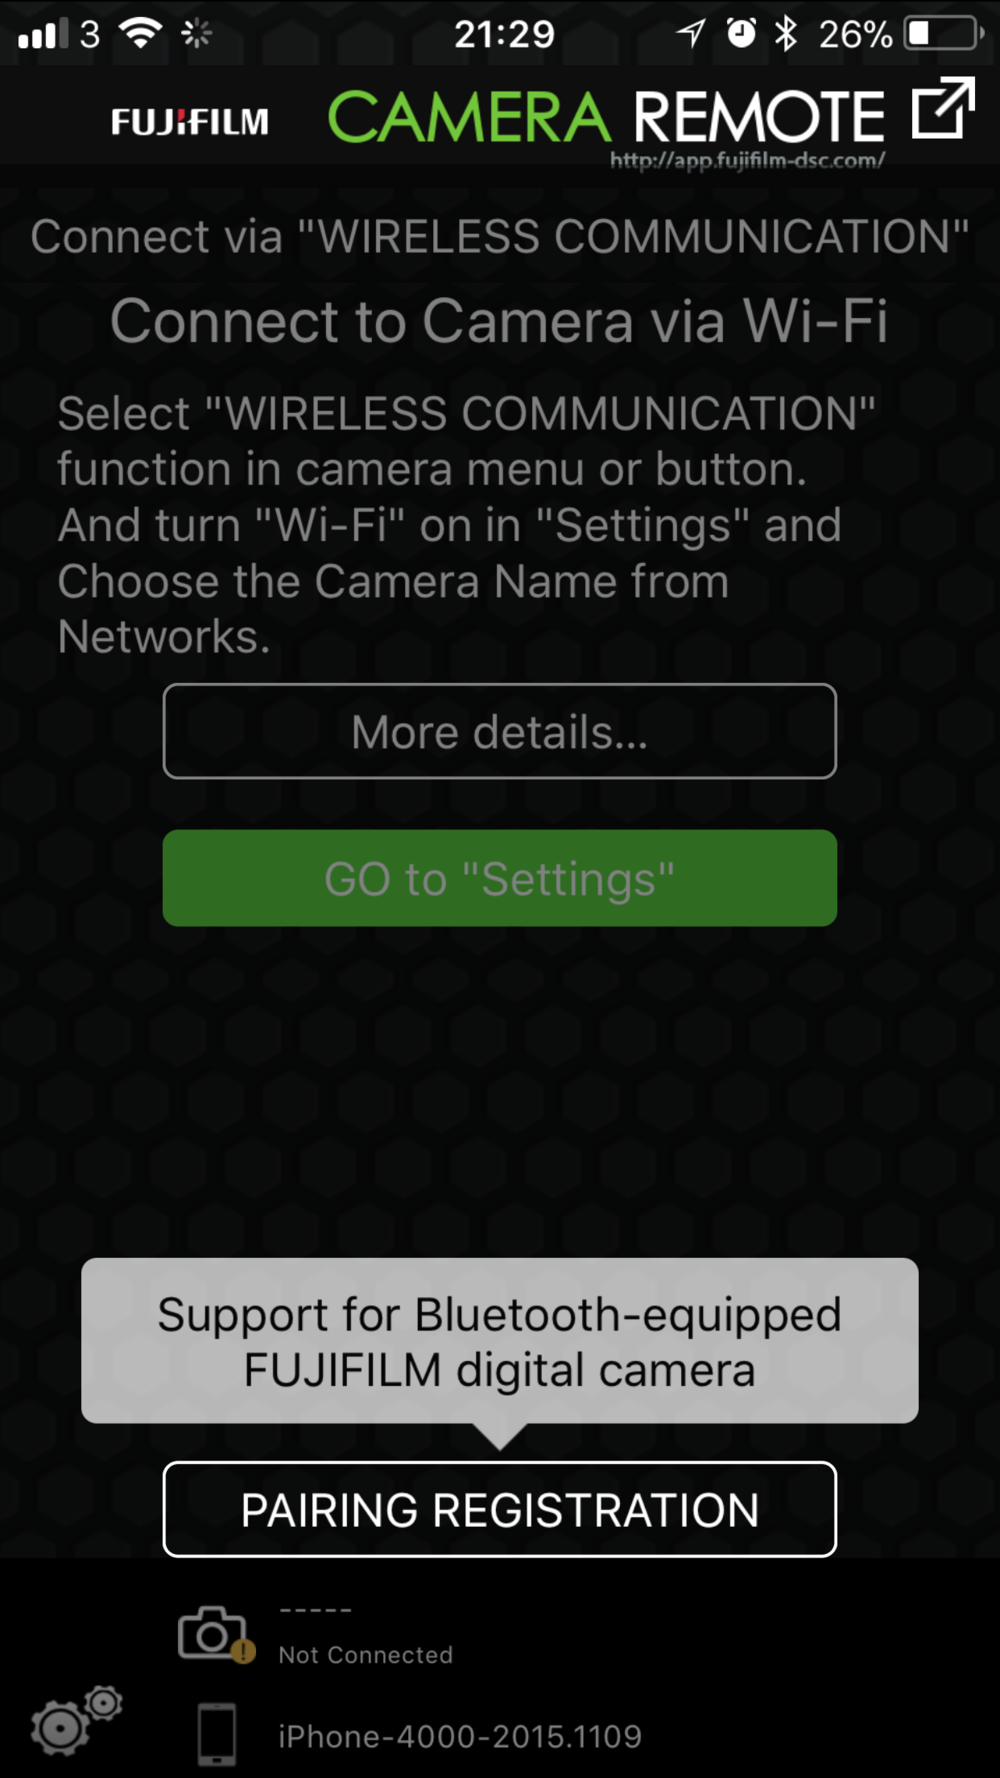 The new Camera Remote app lets you know it supports bluetooth too